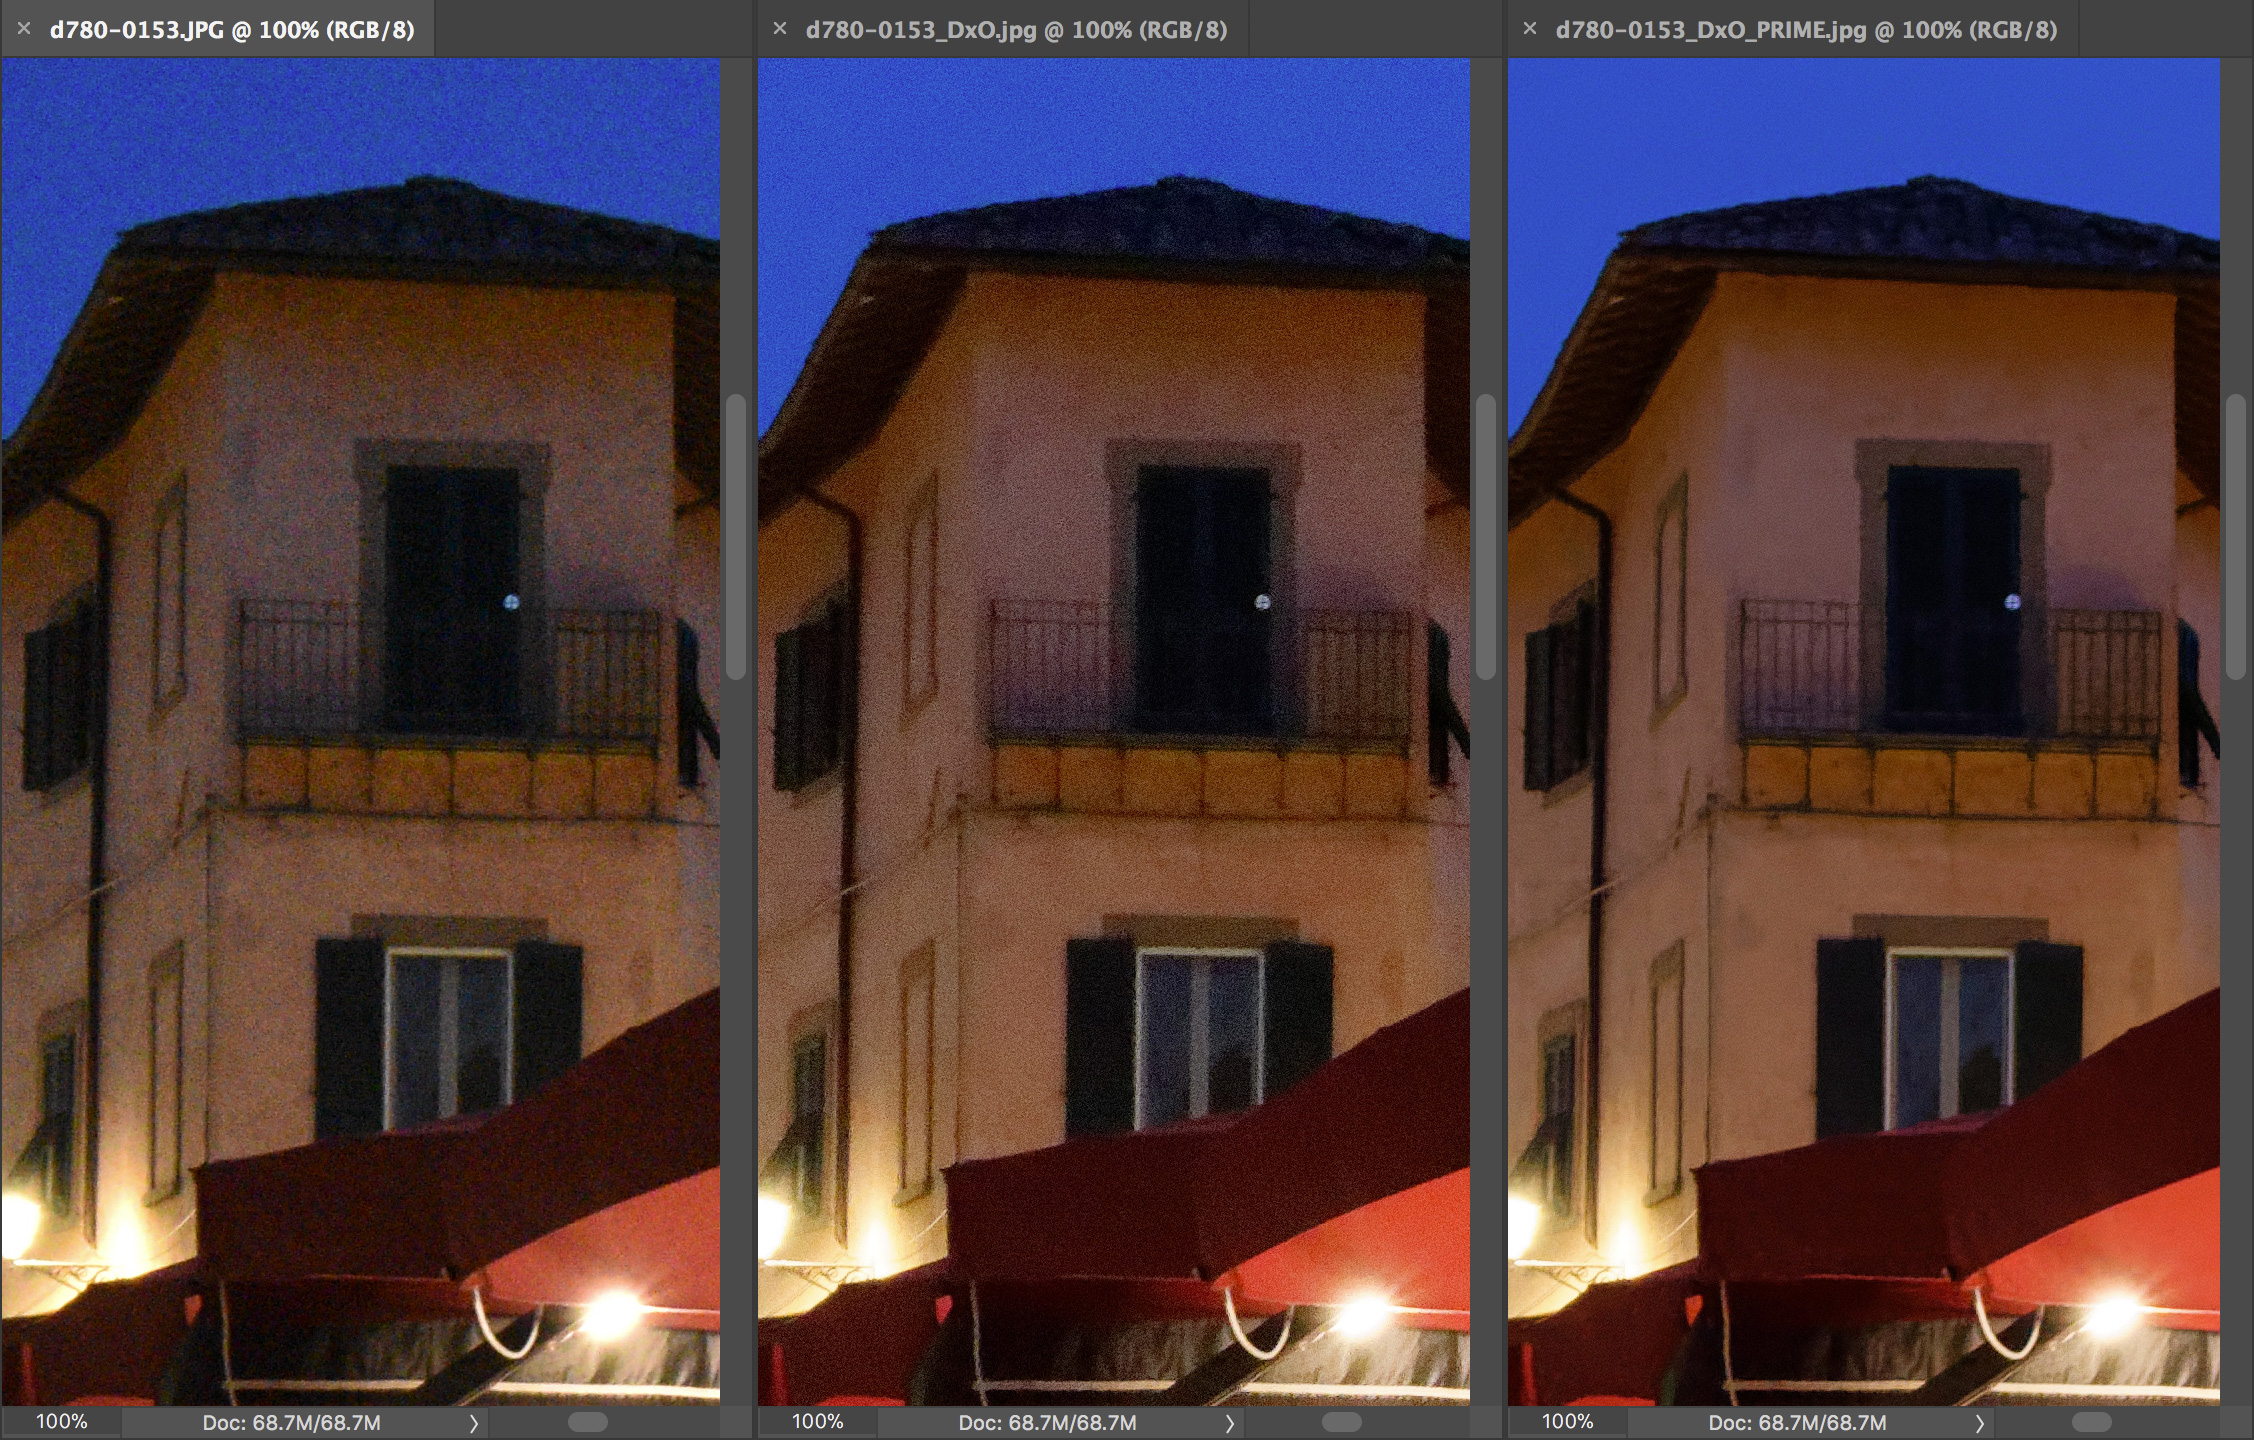 High ISO noise reduction